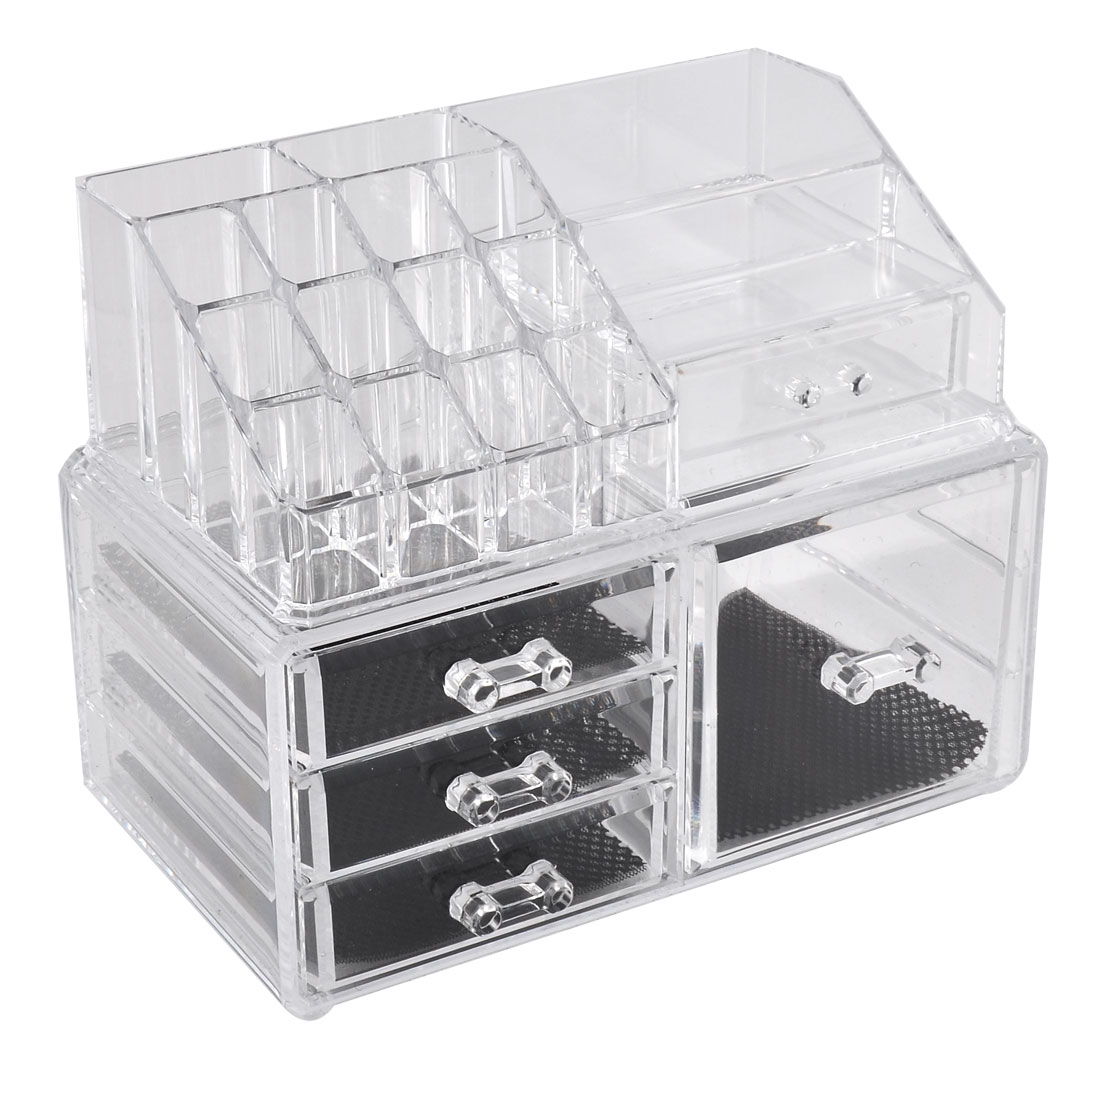 Lady Acrylic Cosmetic Storage Case Display Box Jewelry Organizer Set 2 in 1